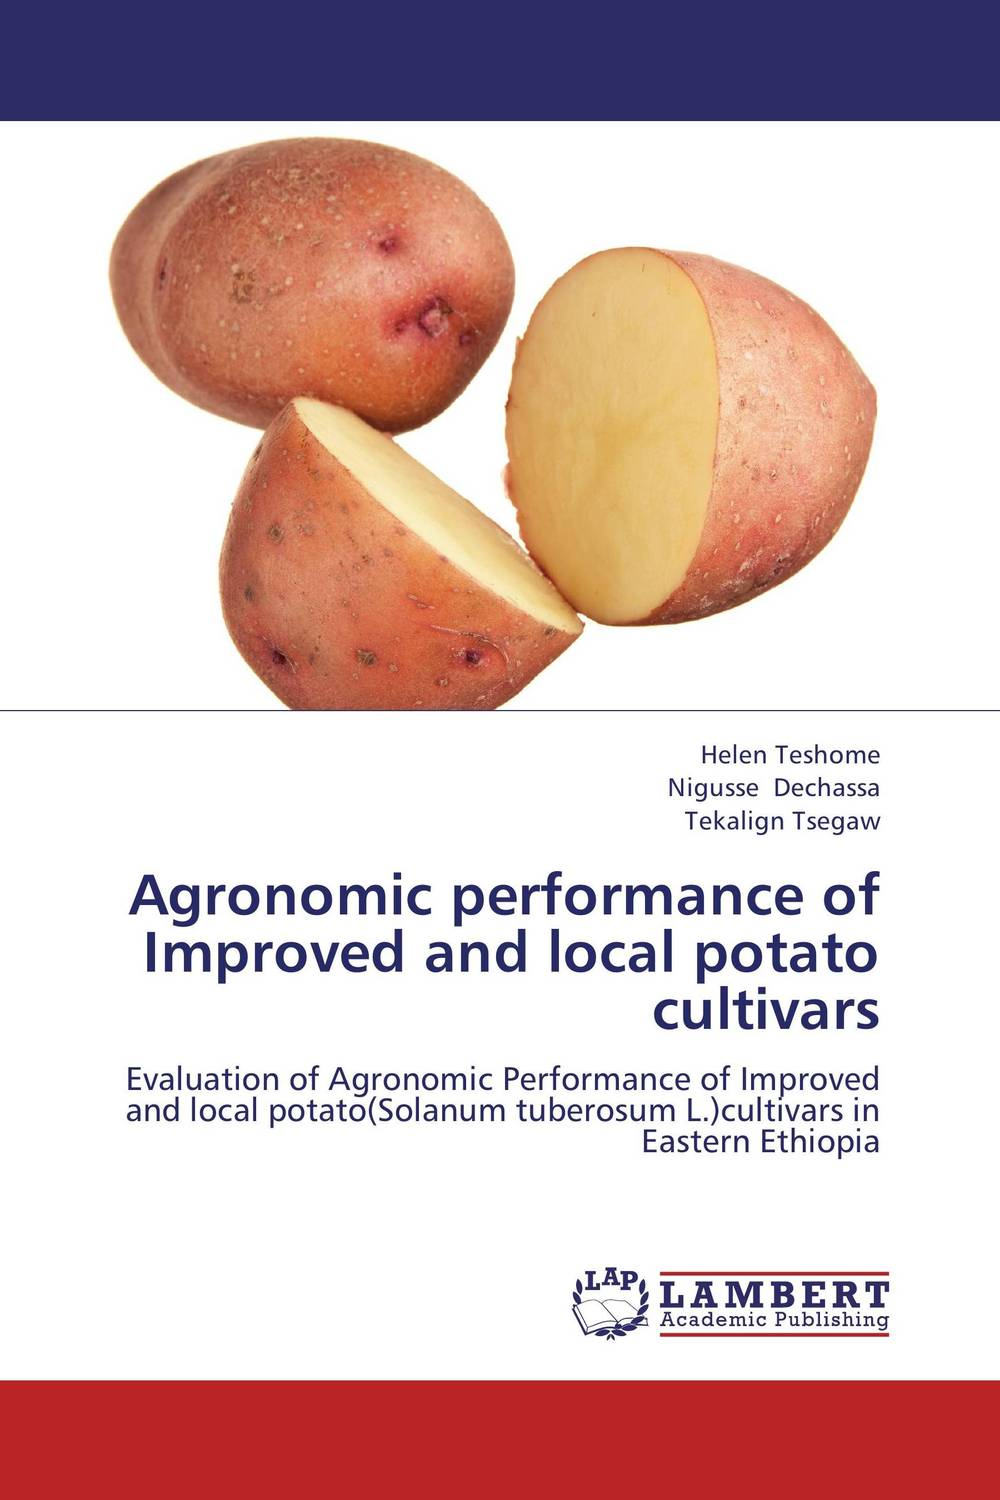 Agronomic performance of Improved and local potato cultivars rudi hilmanto local ecological knowledge